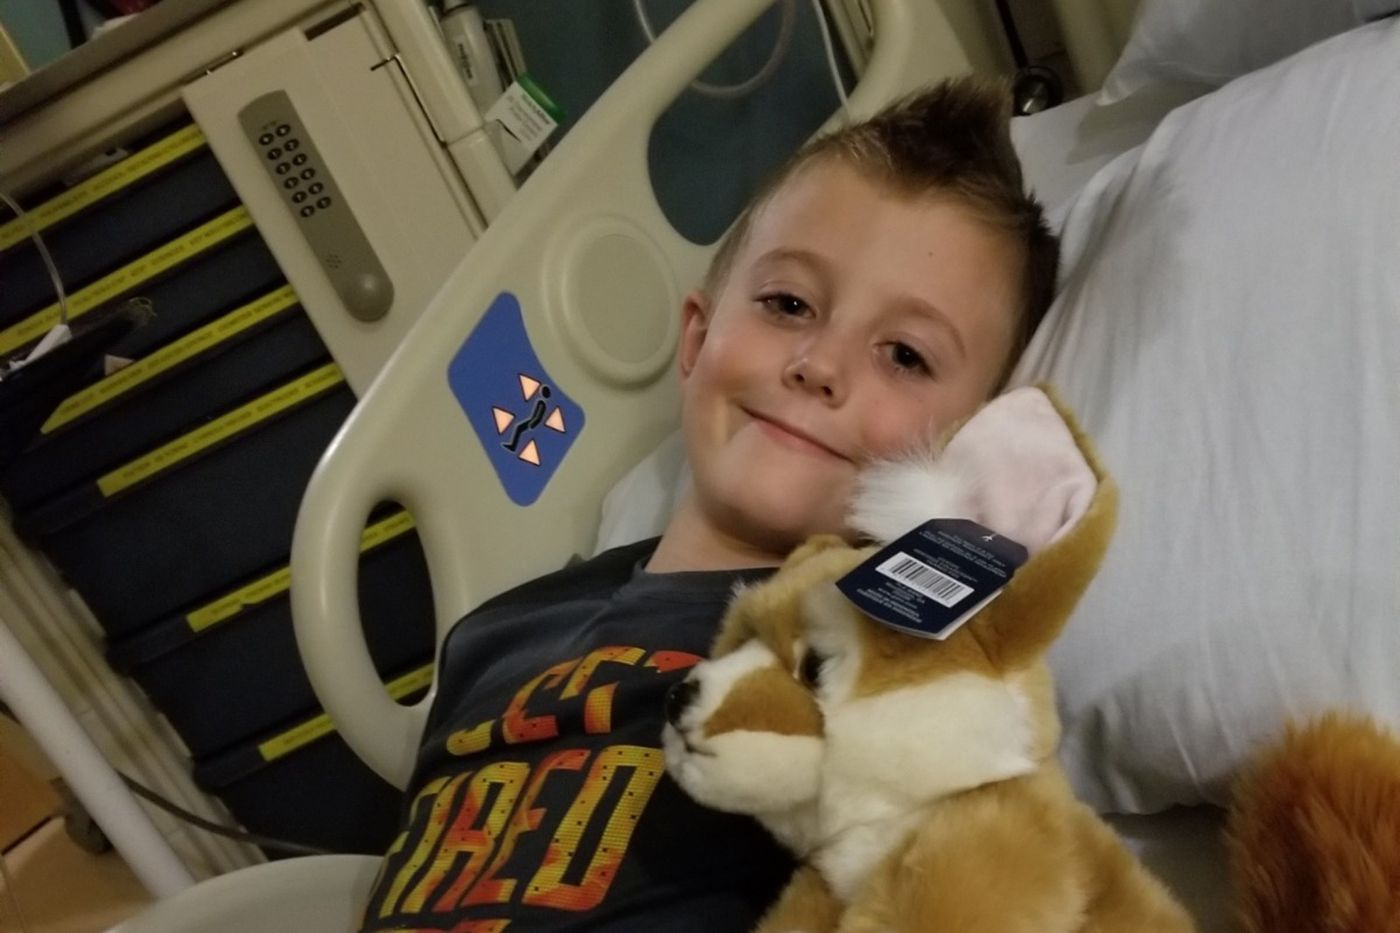 Polio-like illness strikes two in Philly area, is rising nationally